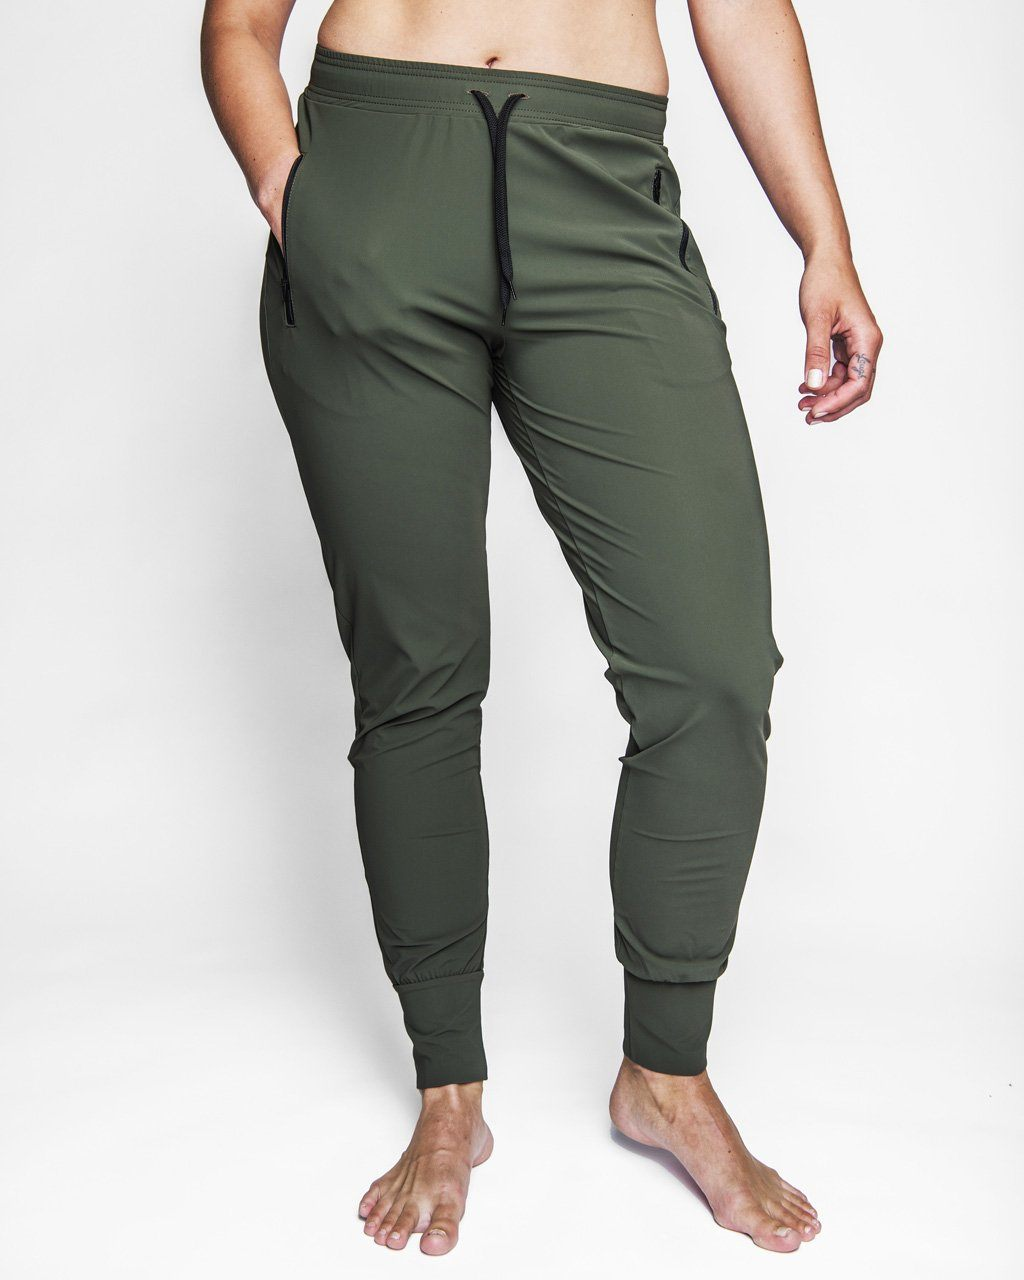 Népra - Yed Joggers - Training Pants - Weekendbee - sustainable sportswear